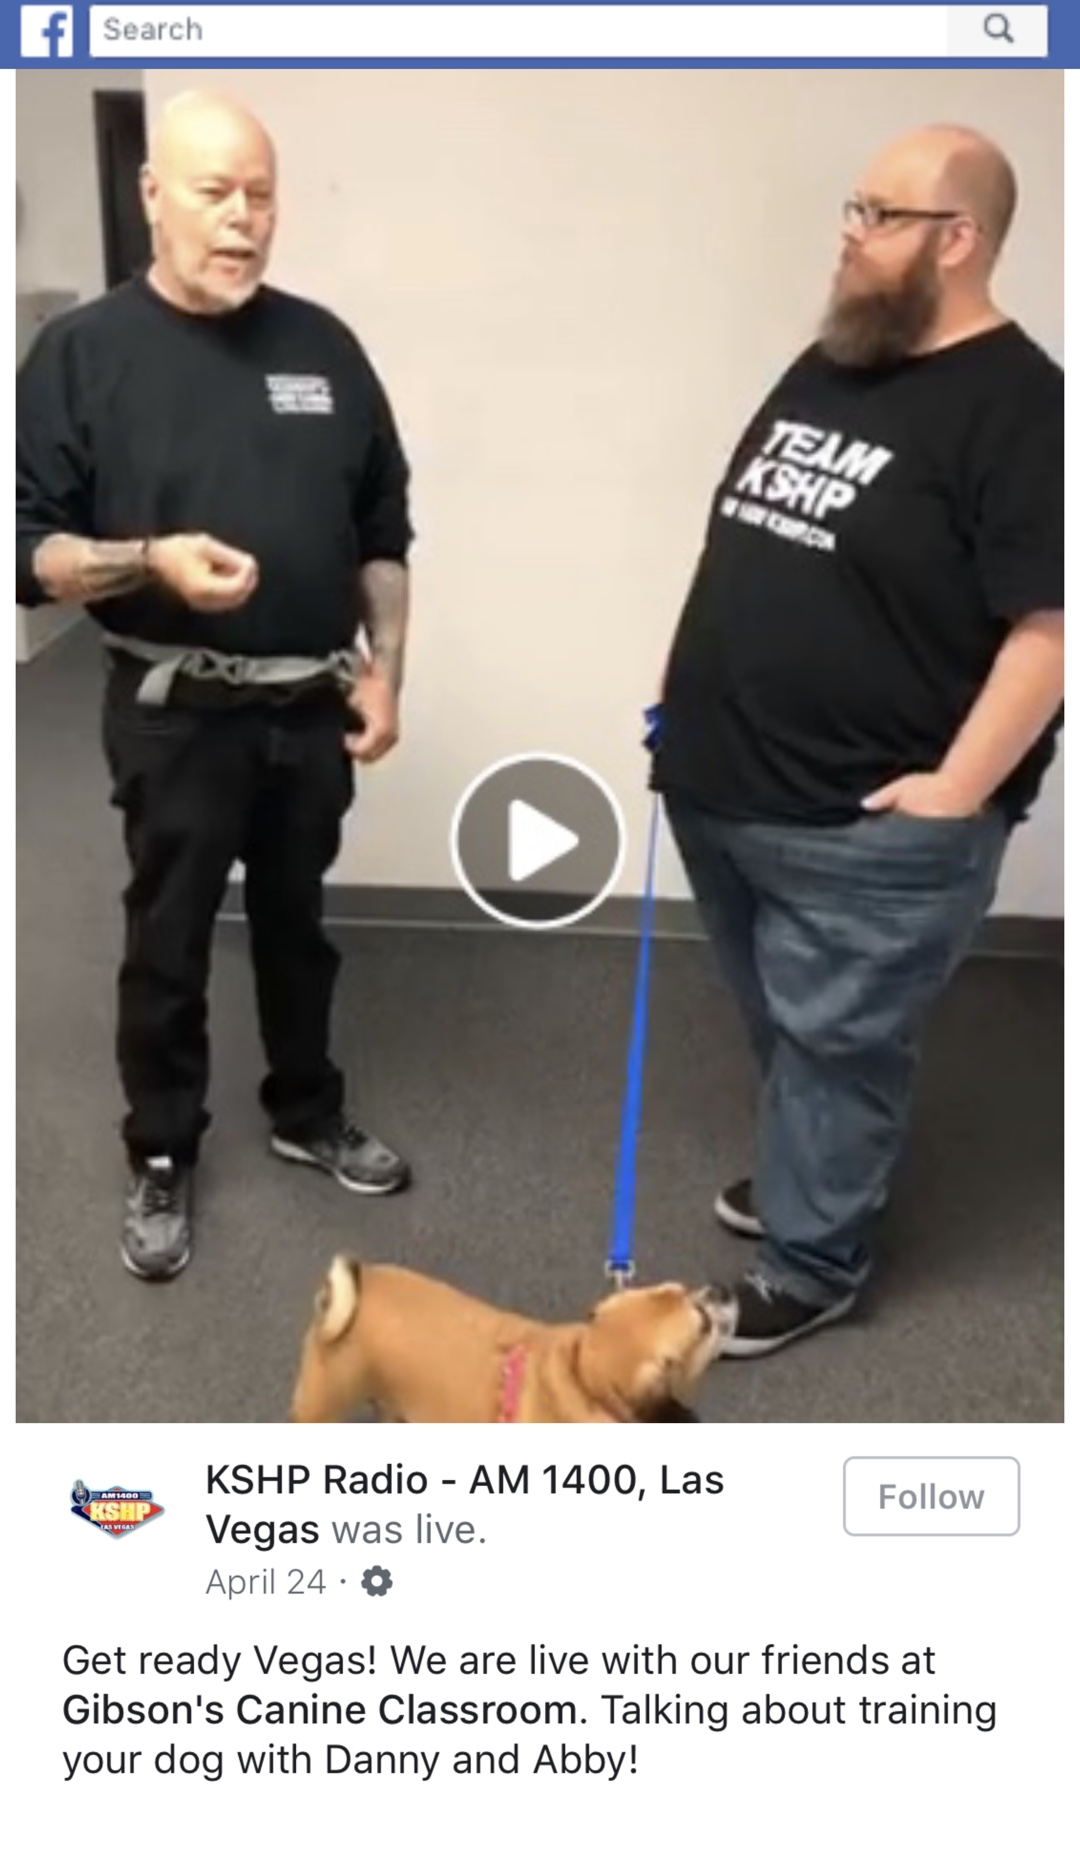 KSHP Radio - AM 1400, Las Vegas was live with Gibson's Canine Classroom